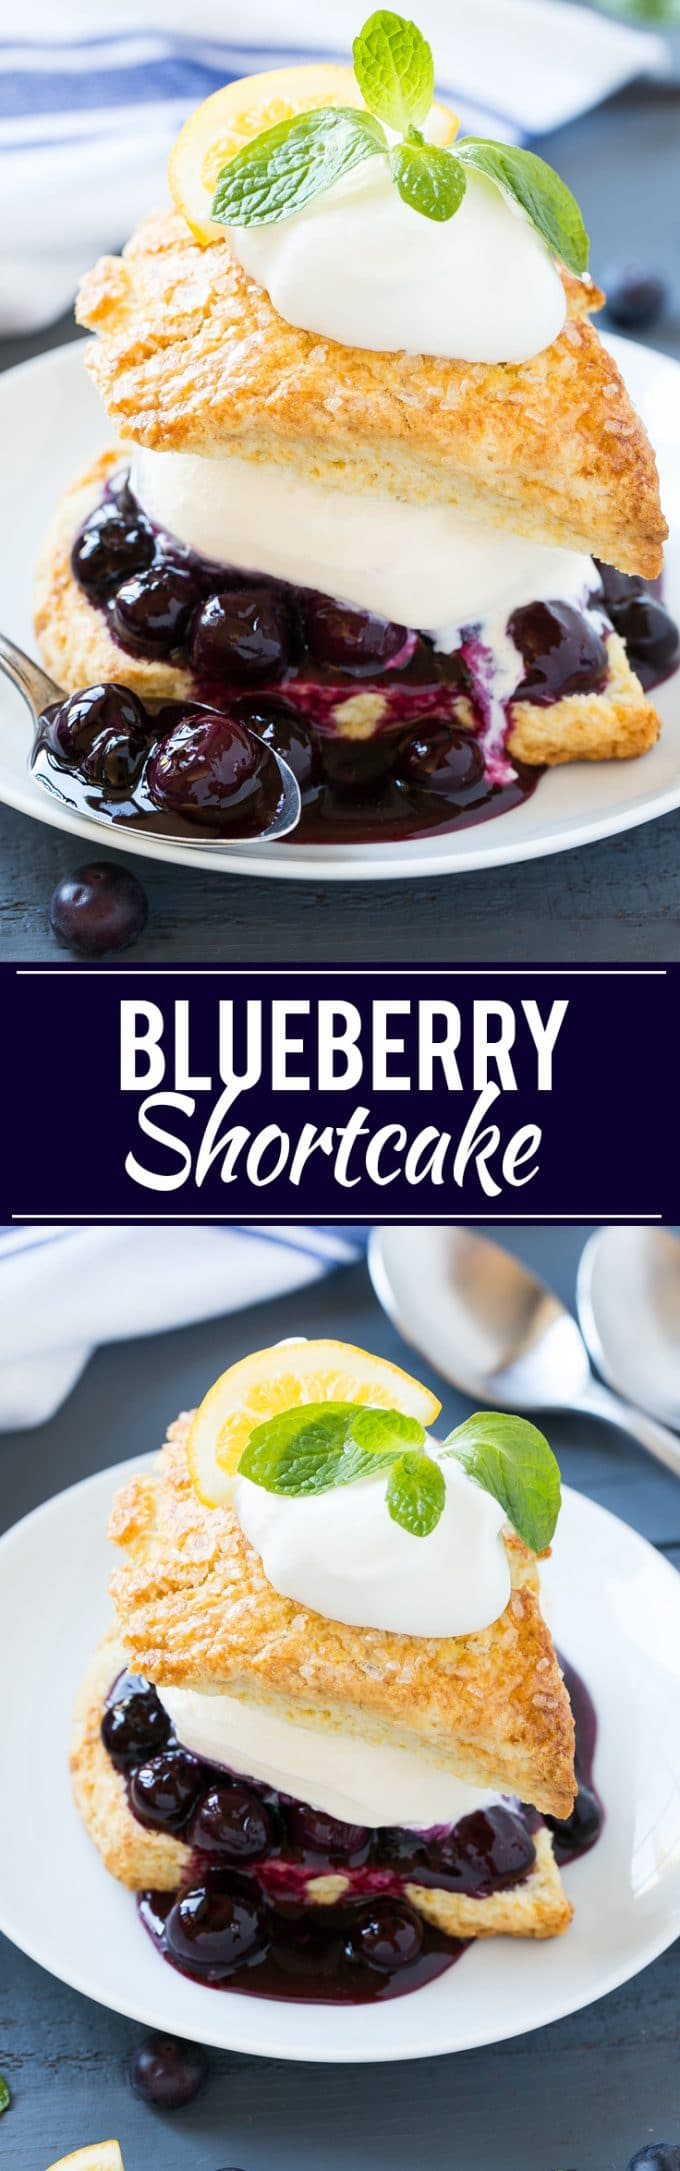 This recipe for blueberry shortcake is vanilla ice cream and homemade blueberry sauce sandwiched between lemon shortcake and finished off with whipped cream. This easy and elegant dessert is perfect for any occasion! #SoHoppinGood ad